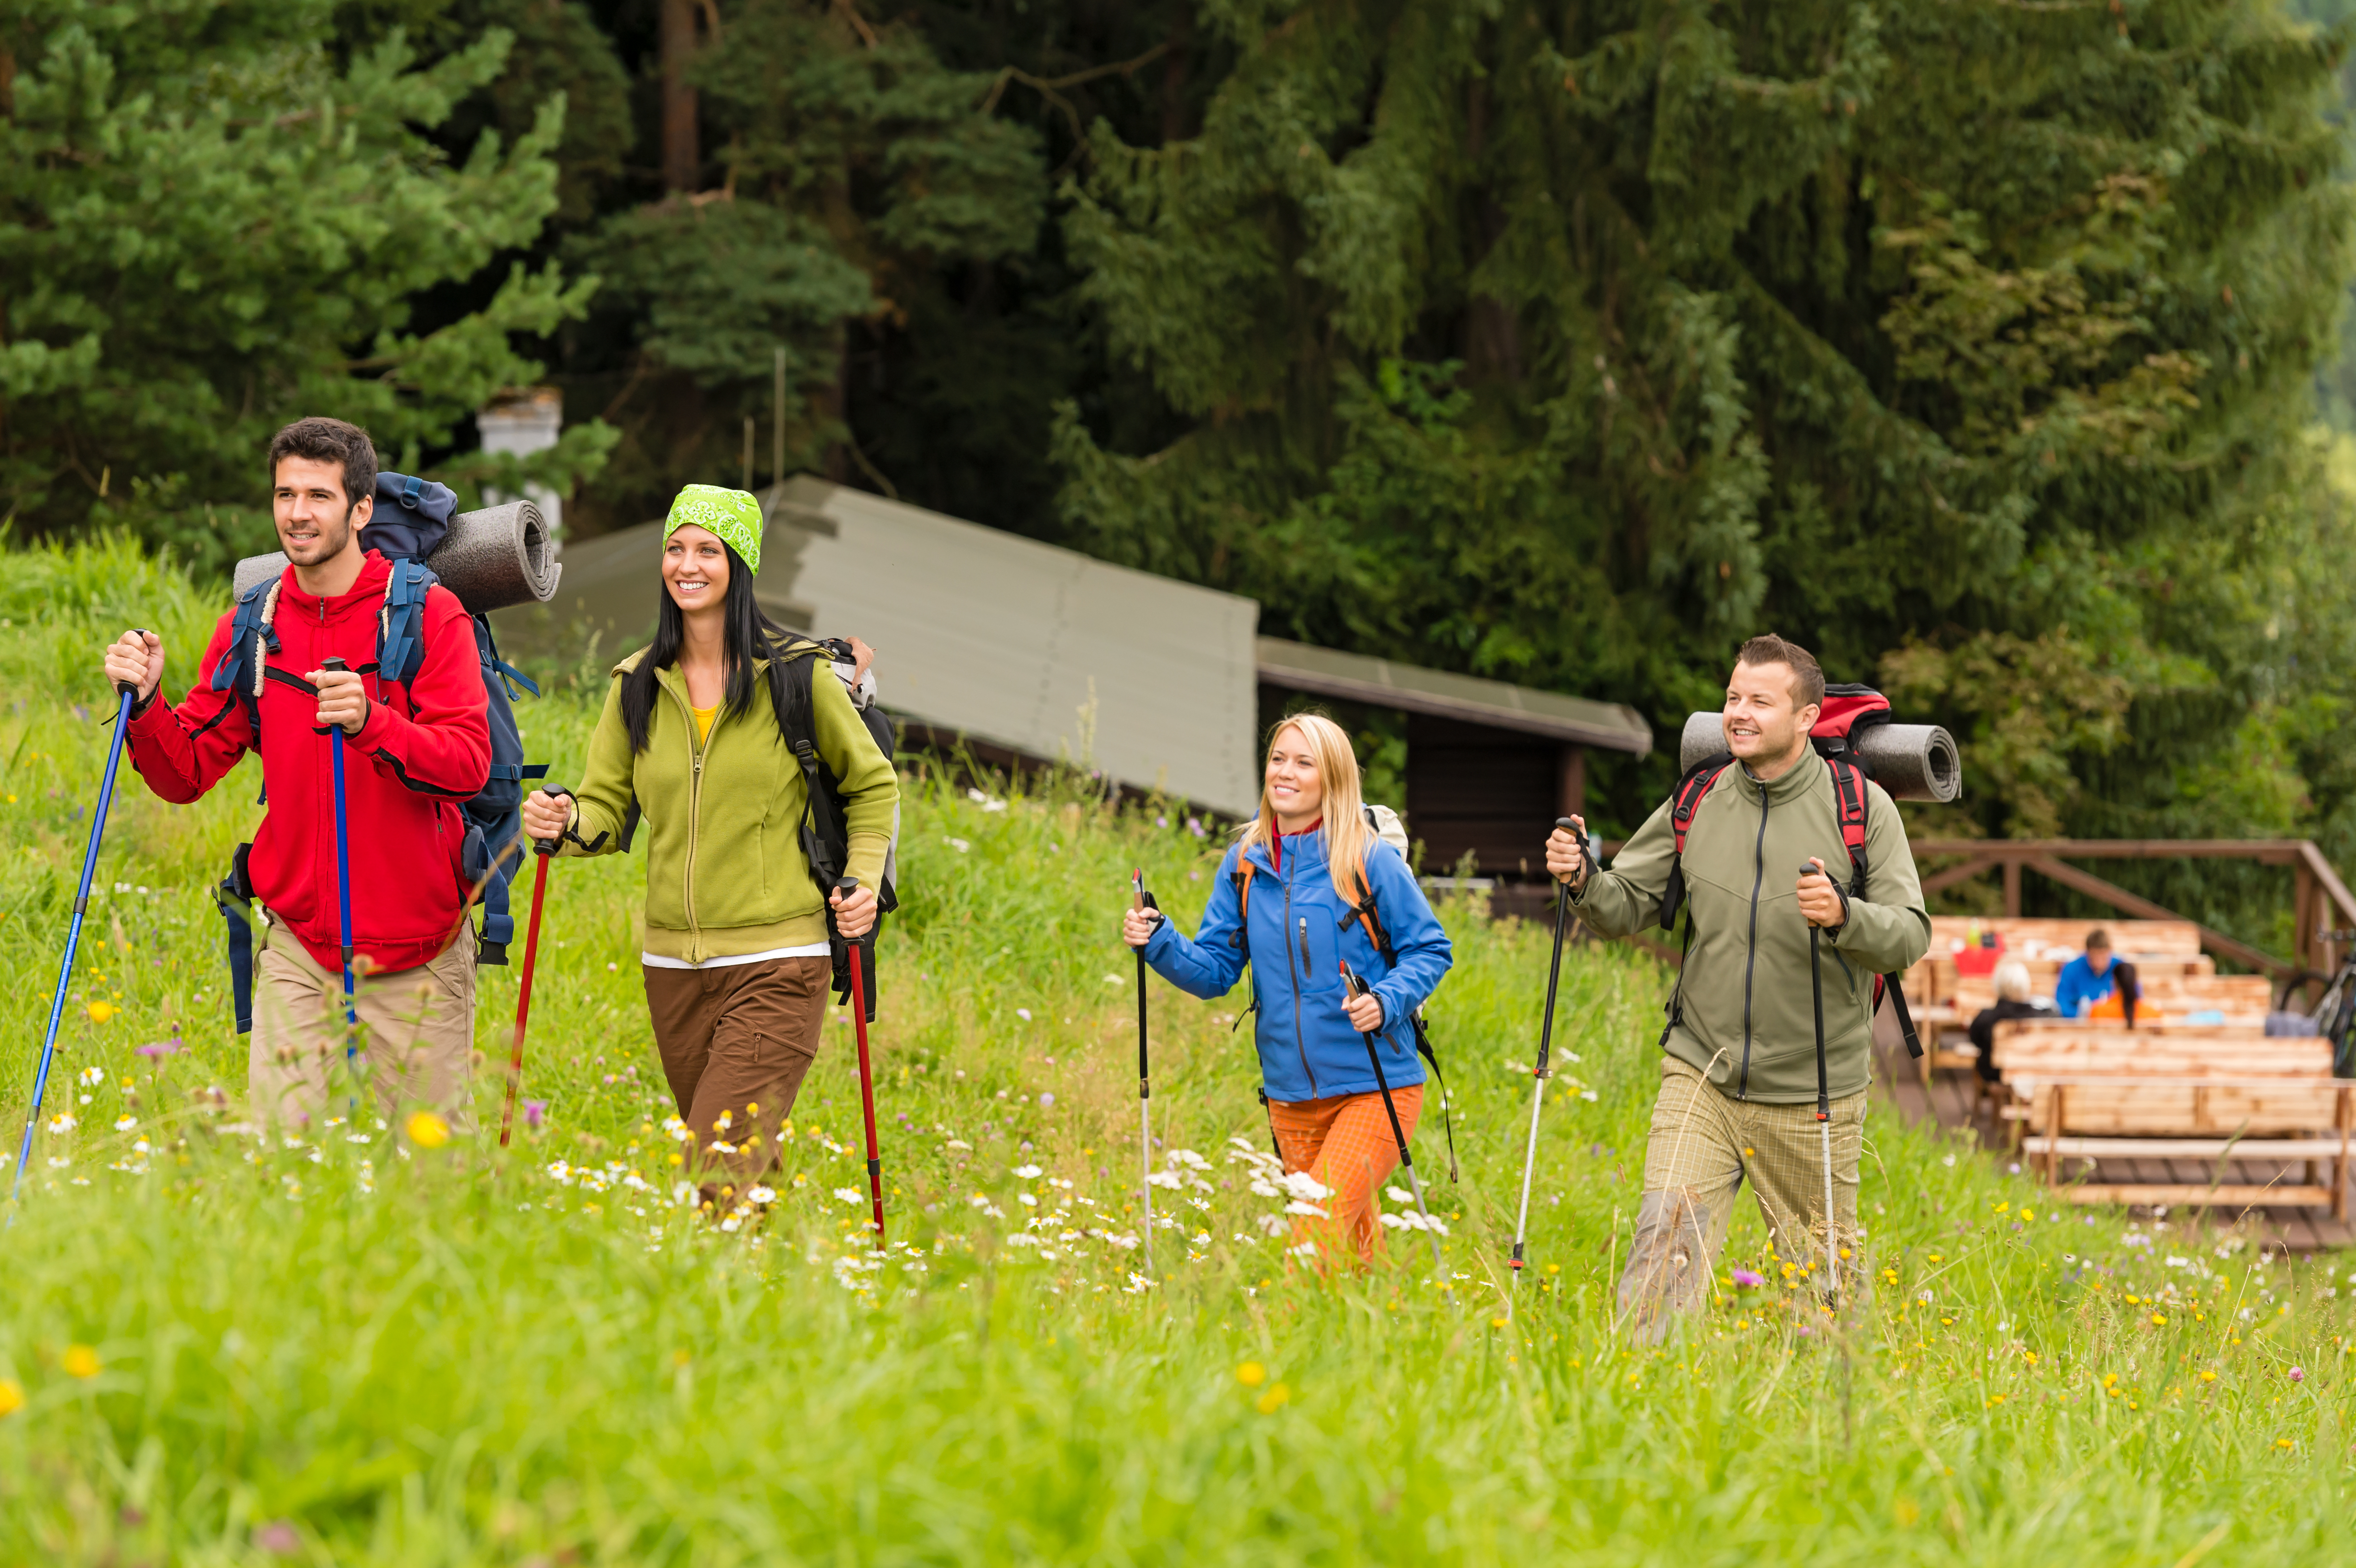 Smiling young people trekking in nature landscape with sticks